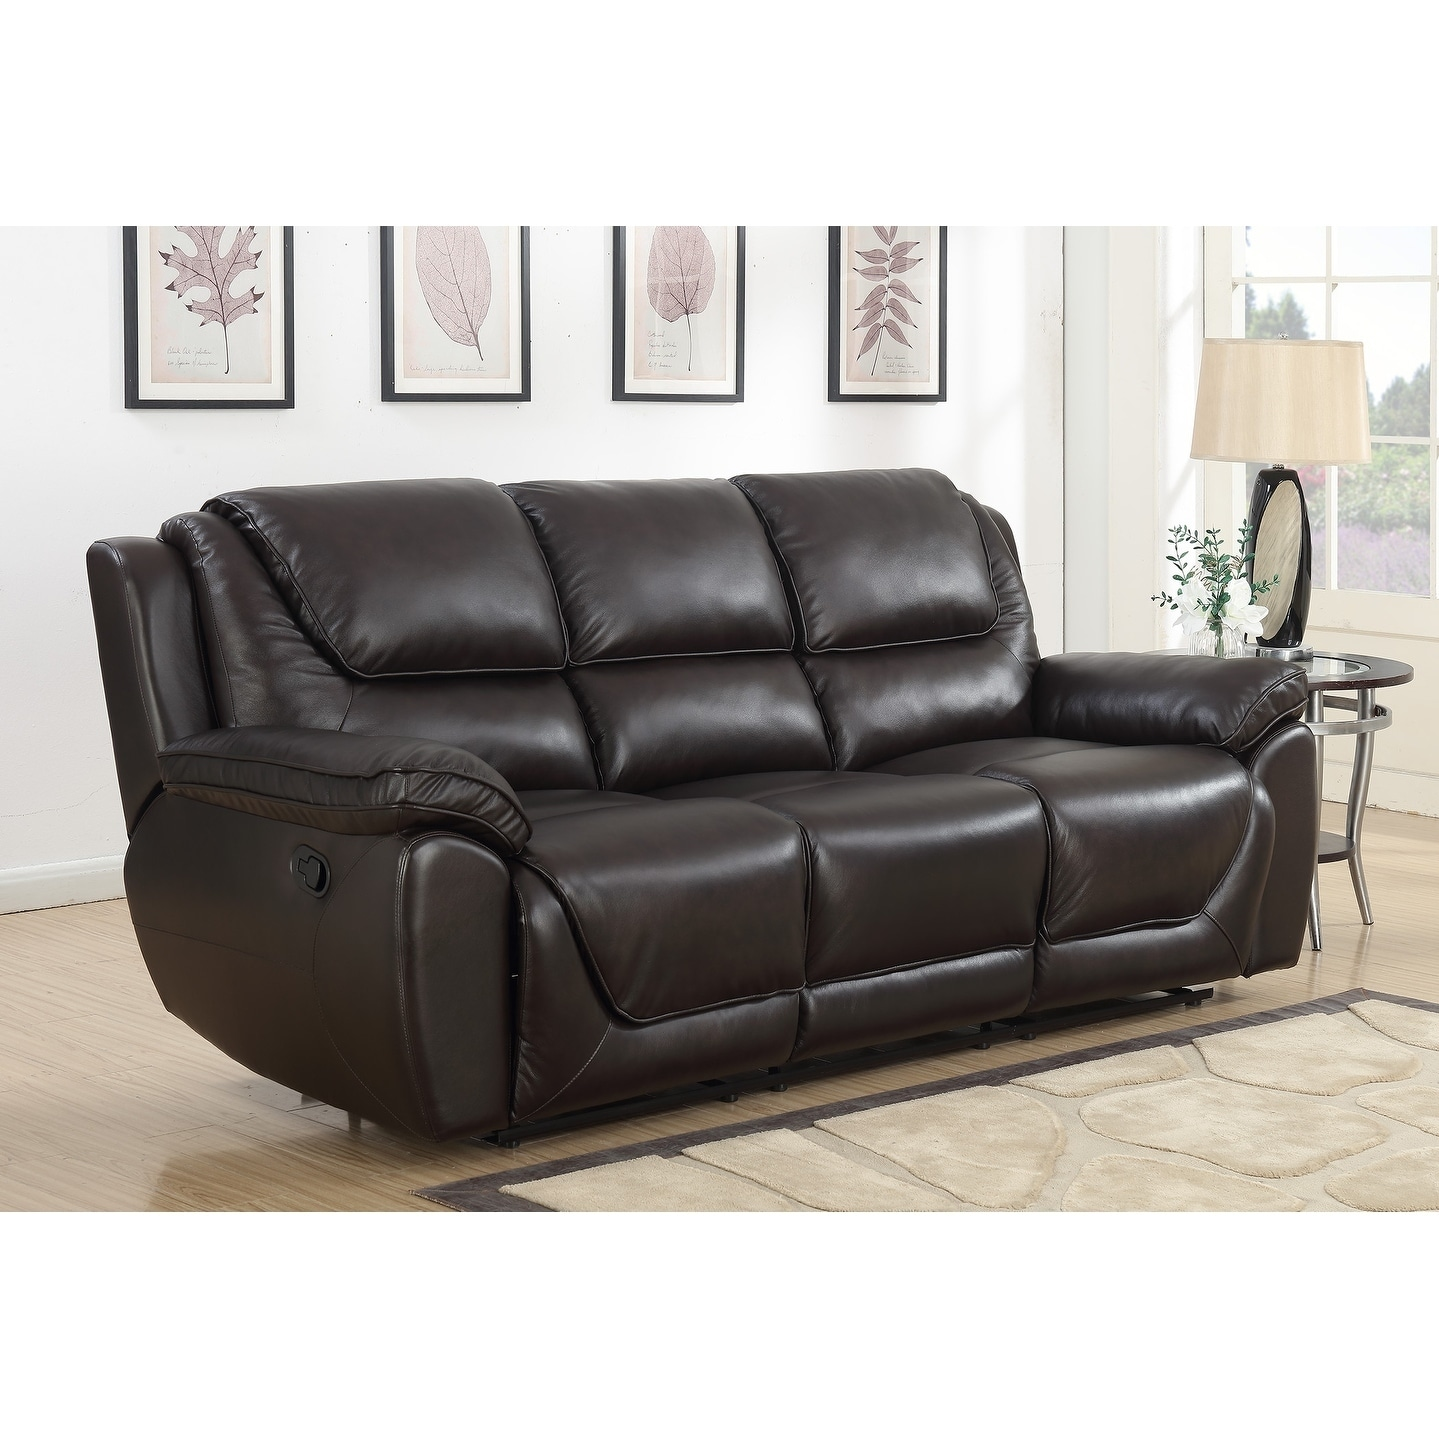 Colton Dual Lay Flat Reclining Leather